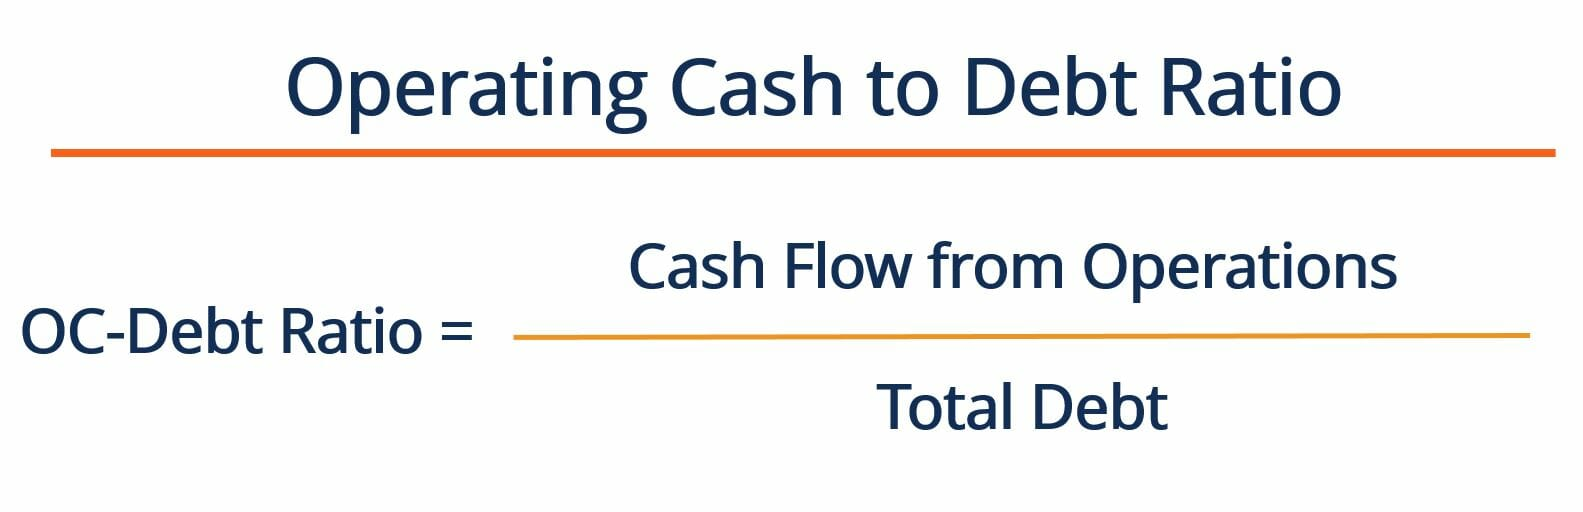 Operating Cash to Debt Ratio - Formula